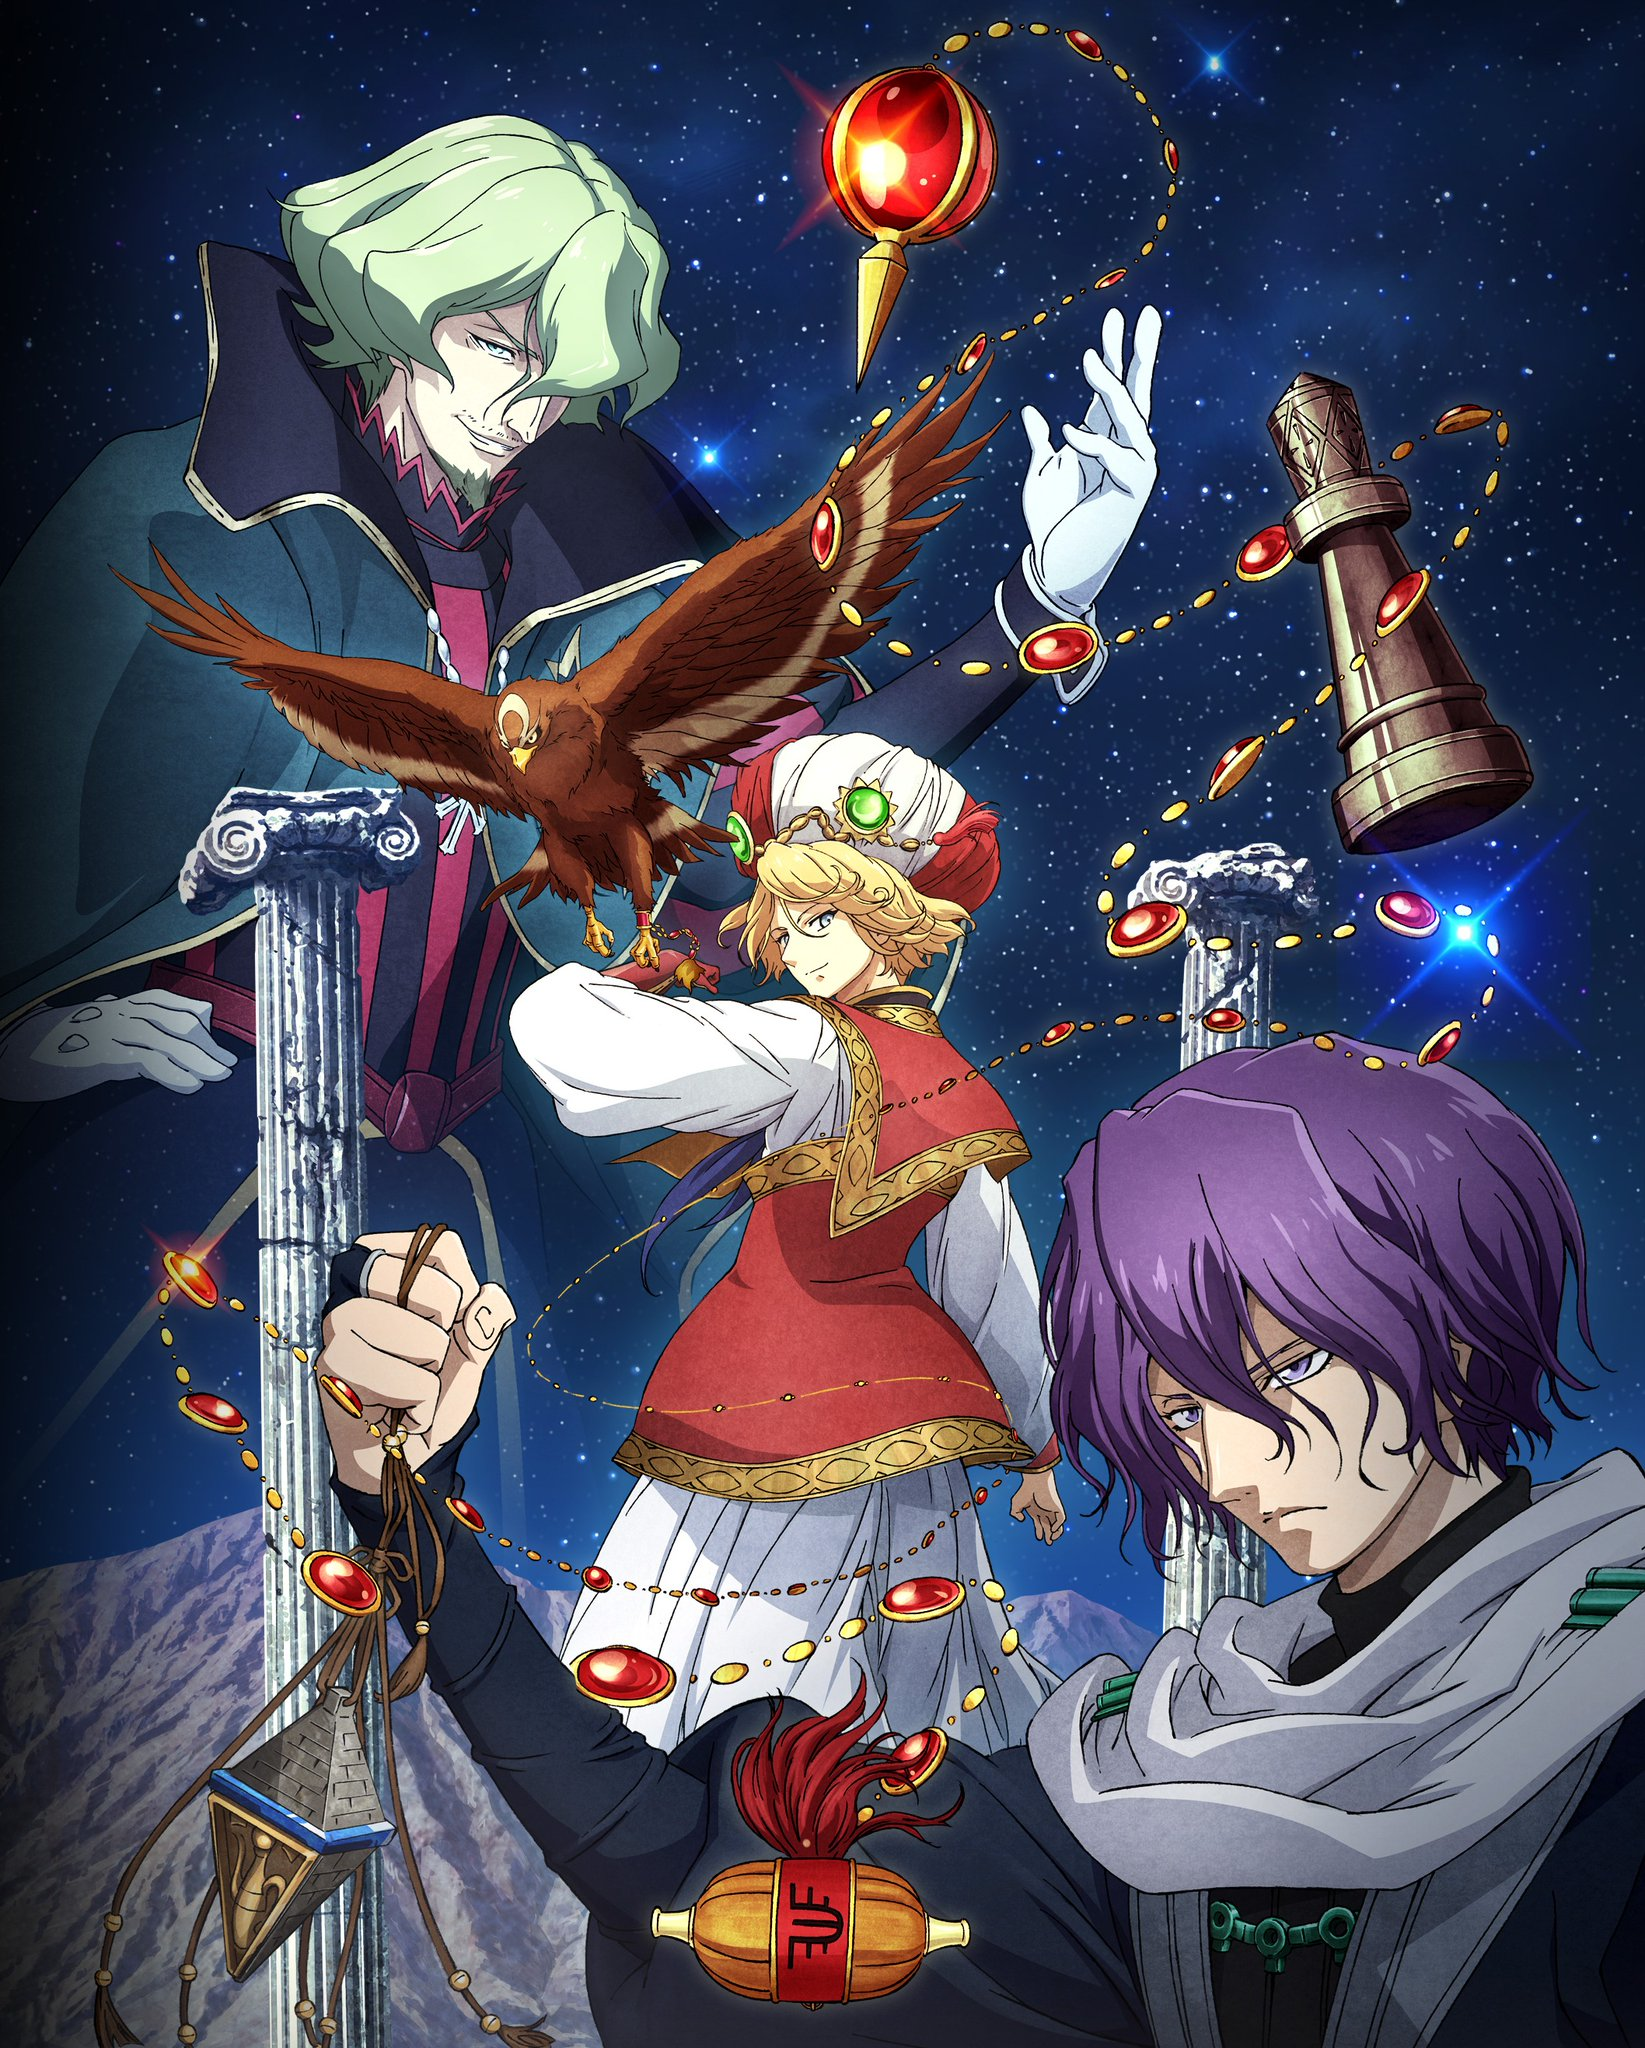 Altair Visual Art Shoukoku no Altair    Project Altair (01 24) VOSTFR   WEB RIP 4K UHD HDR 2160p AAC x265 [NOTAG]